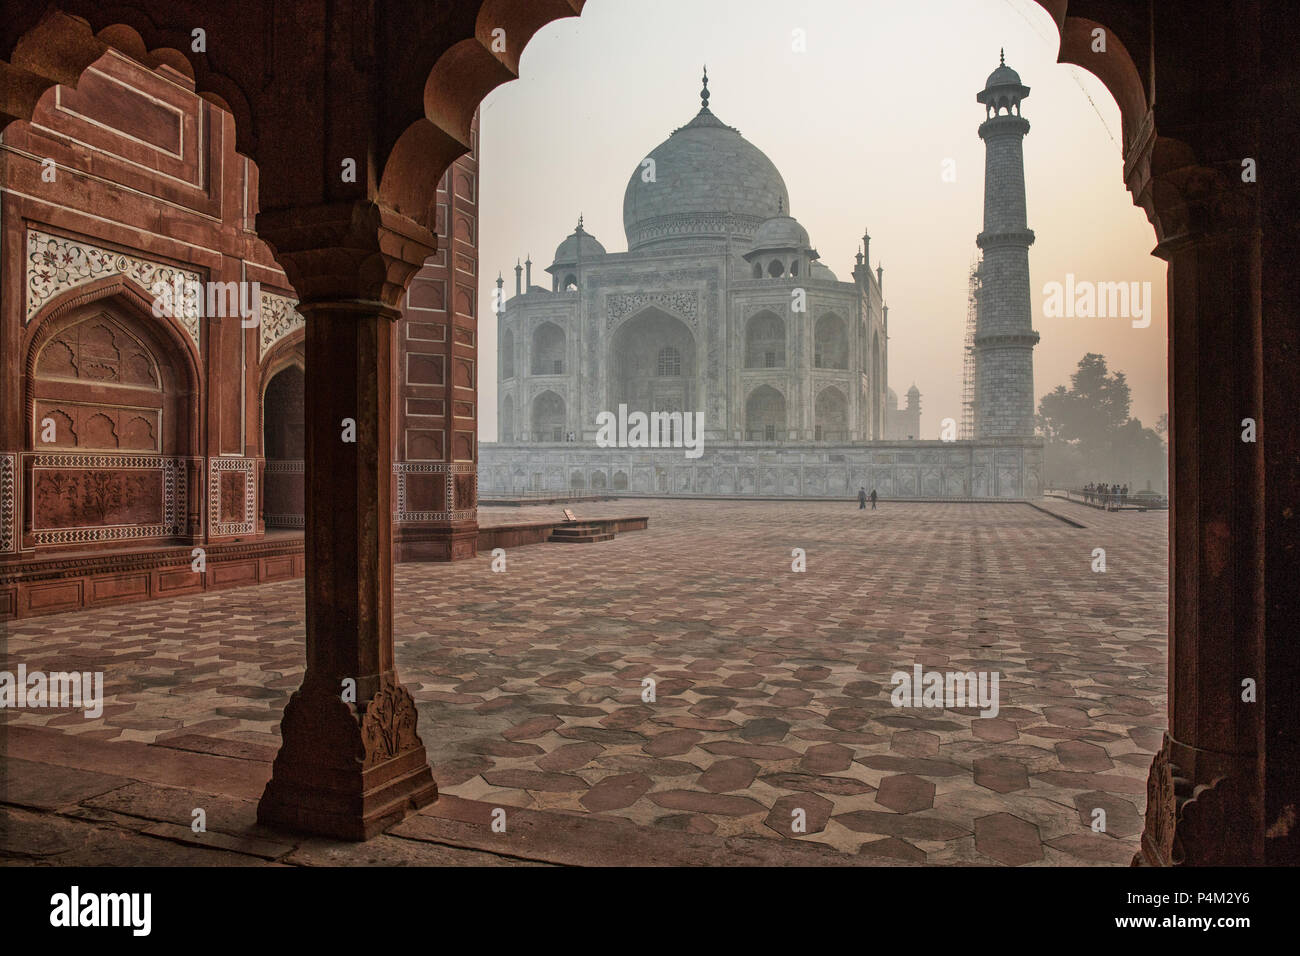 Taj mahal just after sunrise. It can barely be seen due to the high air polution in the Agra area - Stock Image